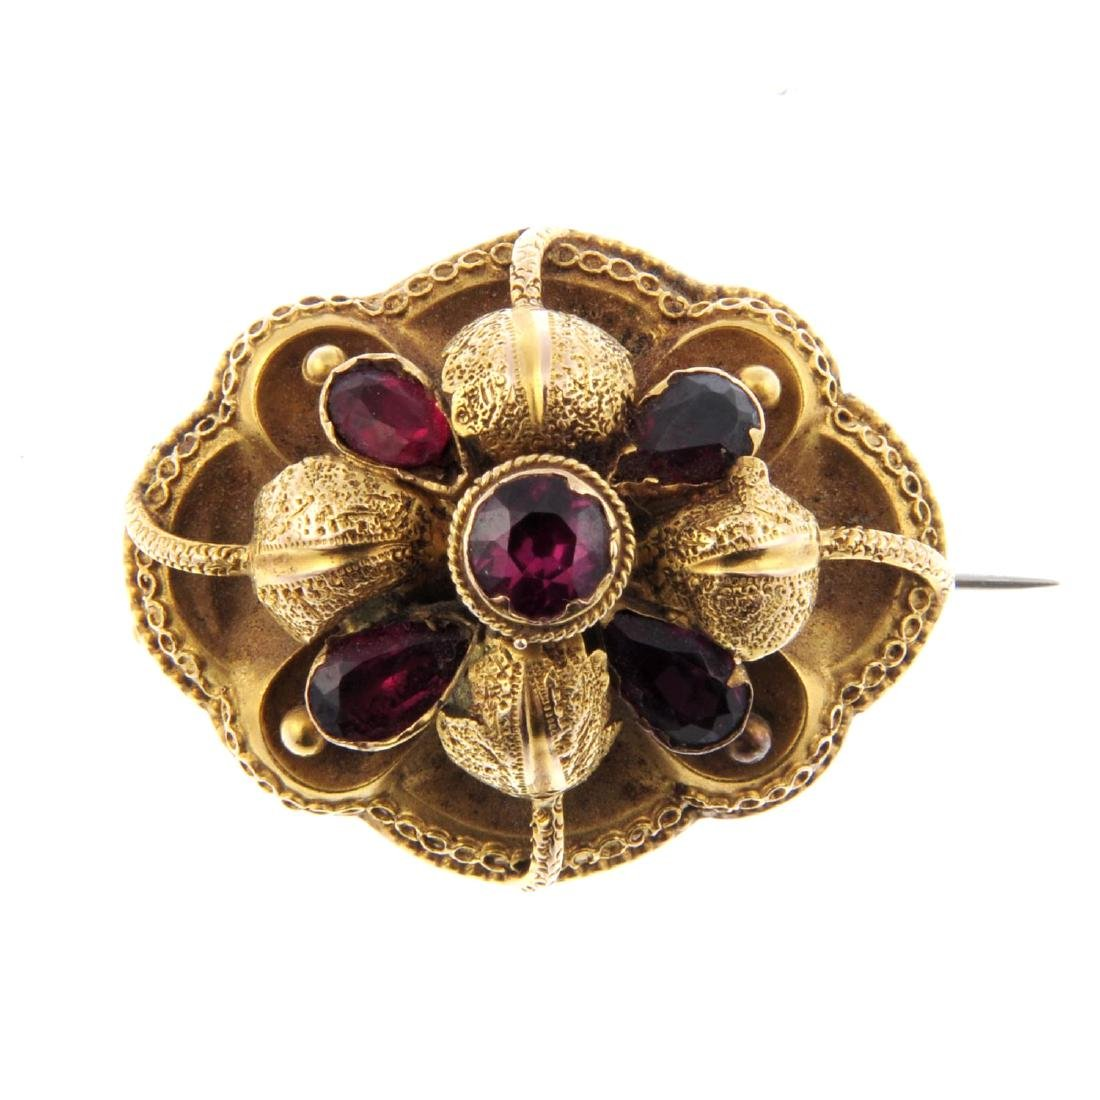 A mid Victorian memorial brooch. With a garnet and